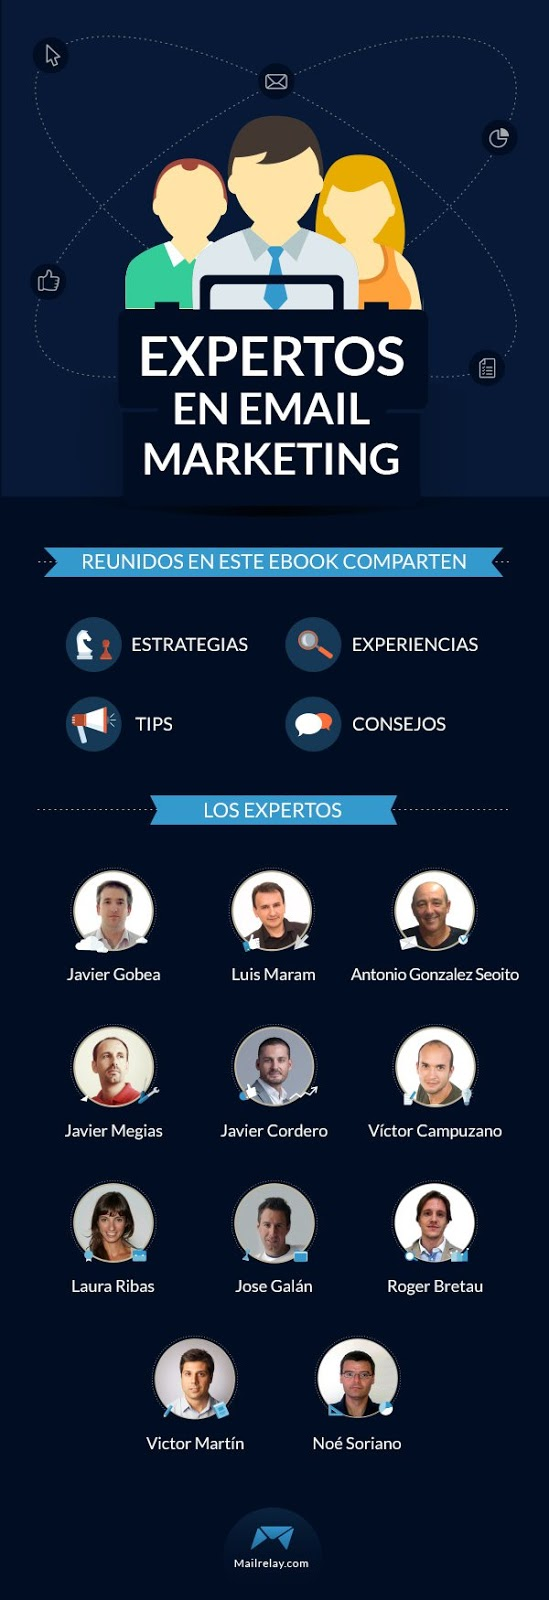 Descárgate el eBook gratis, expertos en email marketing te dan todas las claves